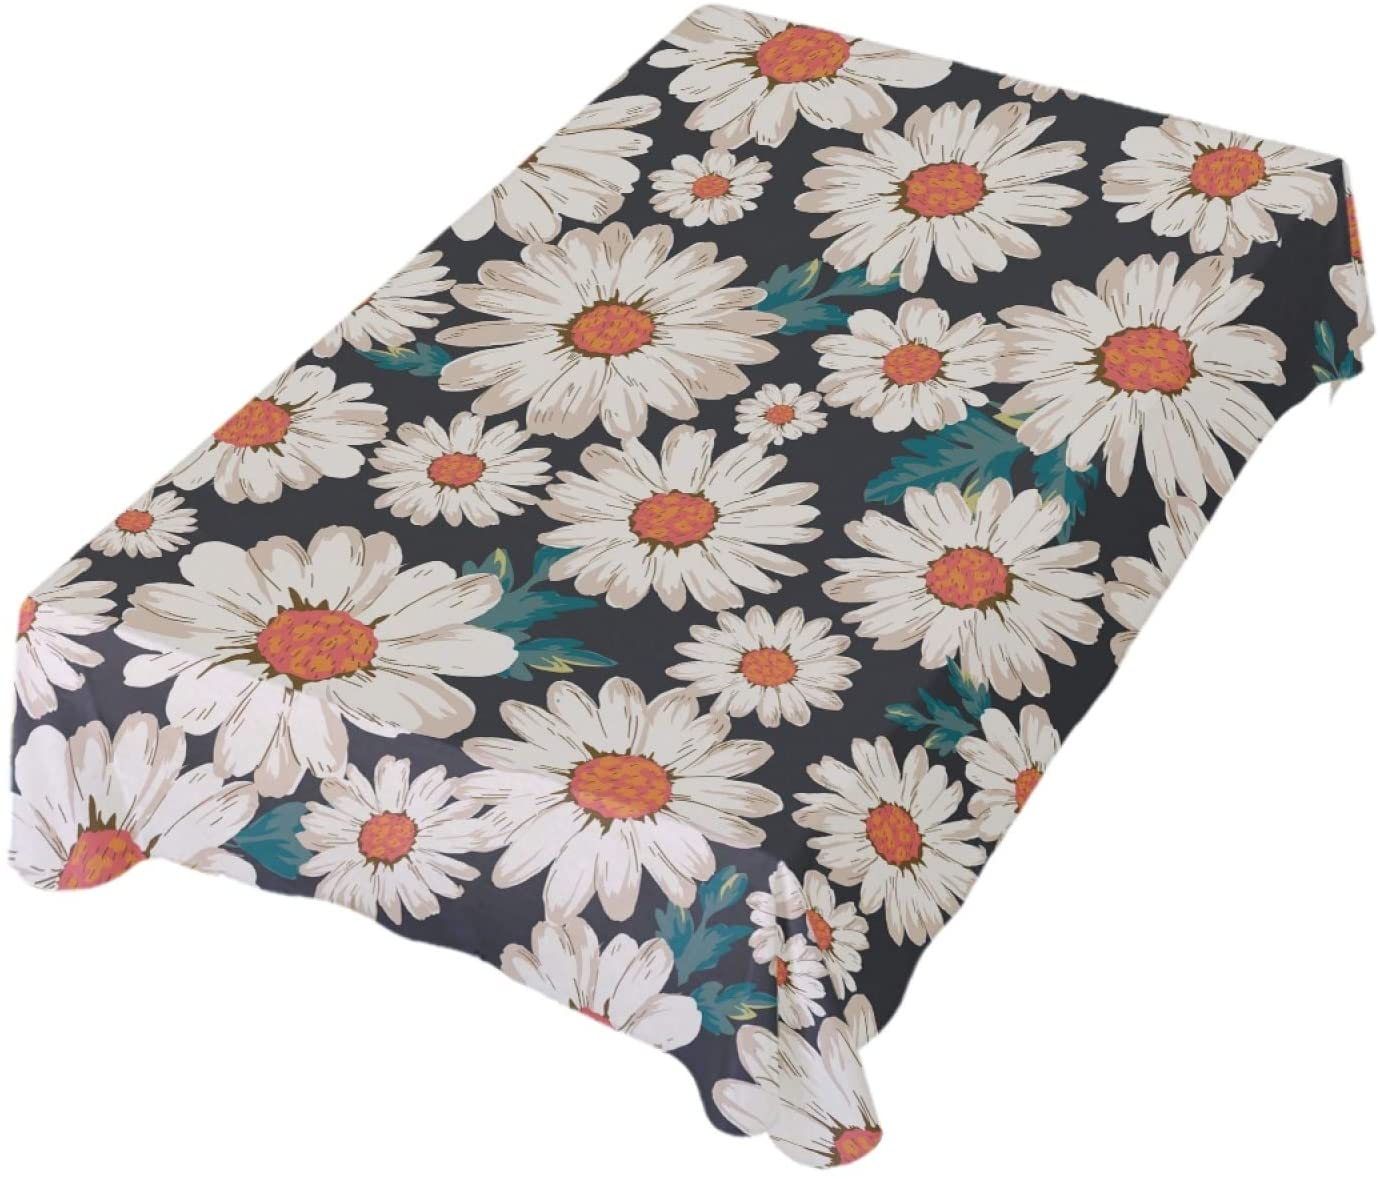 ALAZA Floral Daisy Table Cloth Square 54 x 54 Inch Tablecloth Anti Wrinkle Table Cover for Dining Kitchen Parties